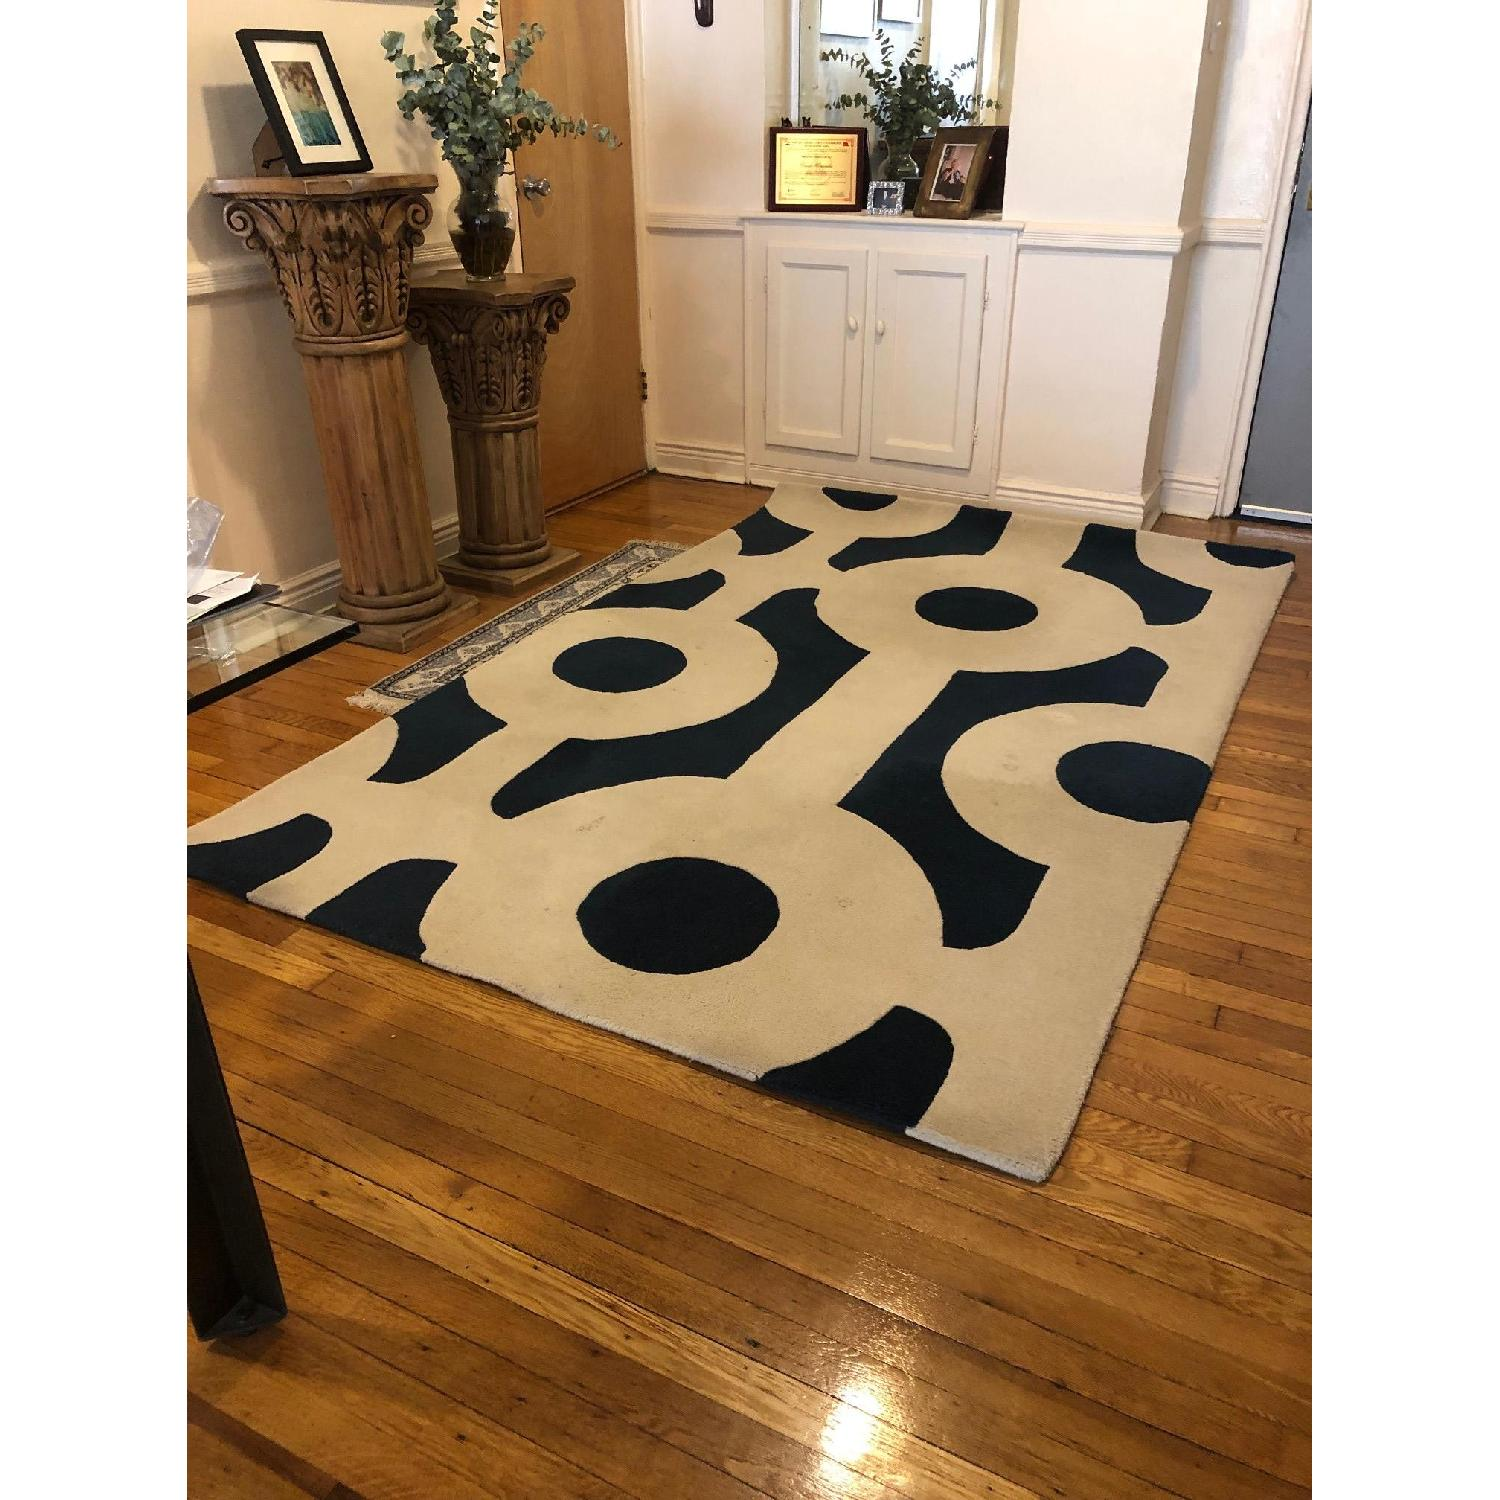 CB2 Roundabout Area Rug-0